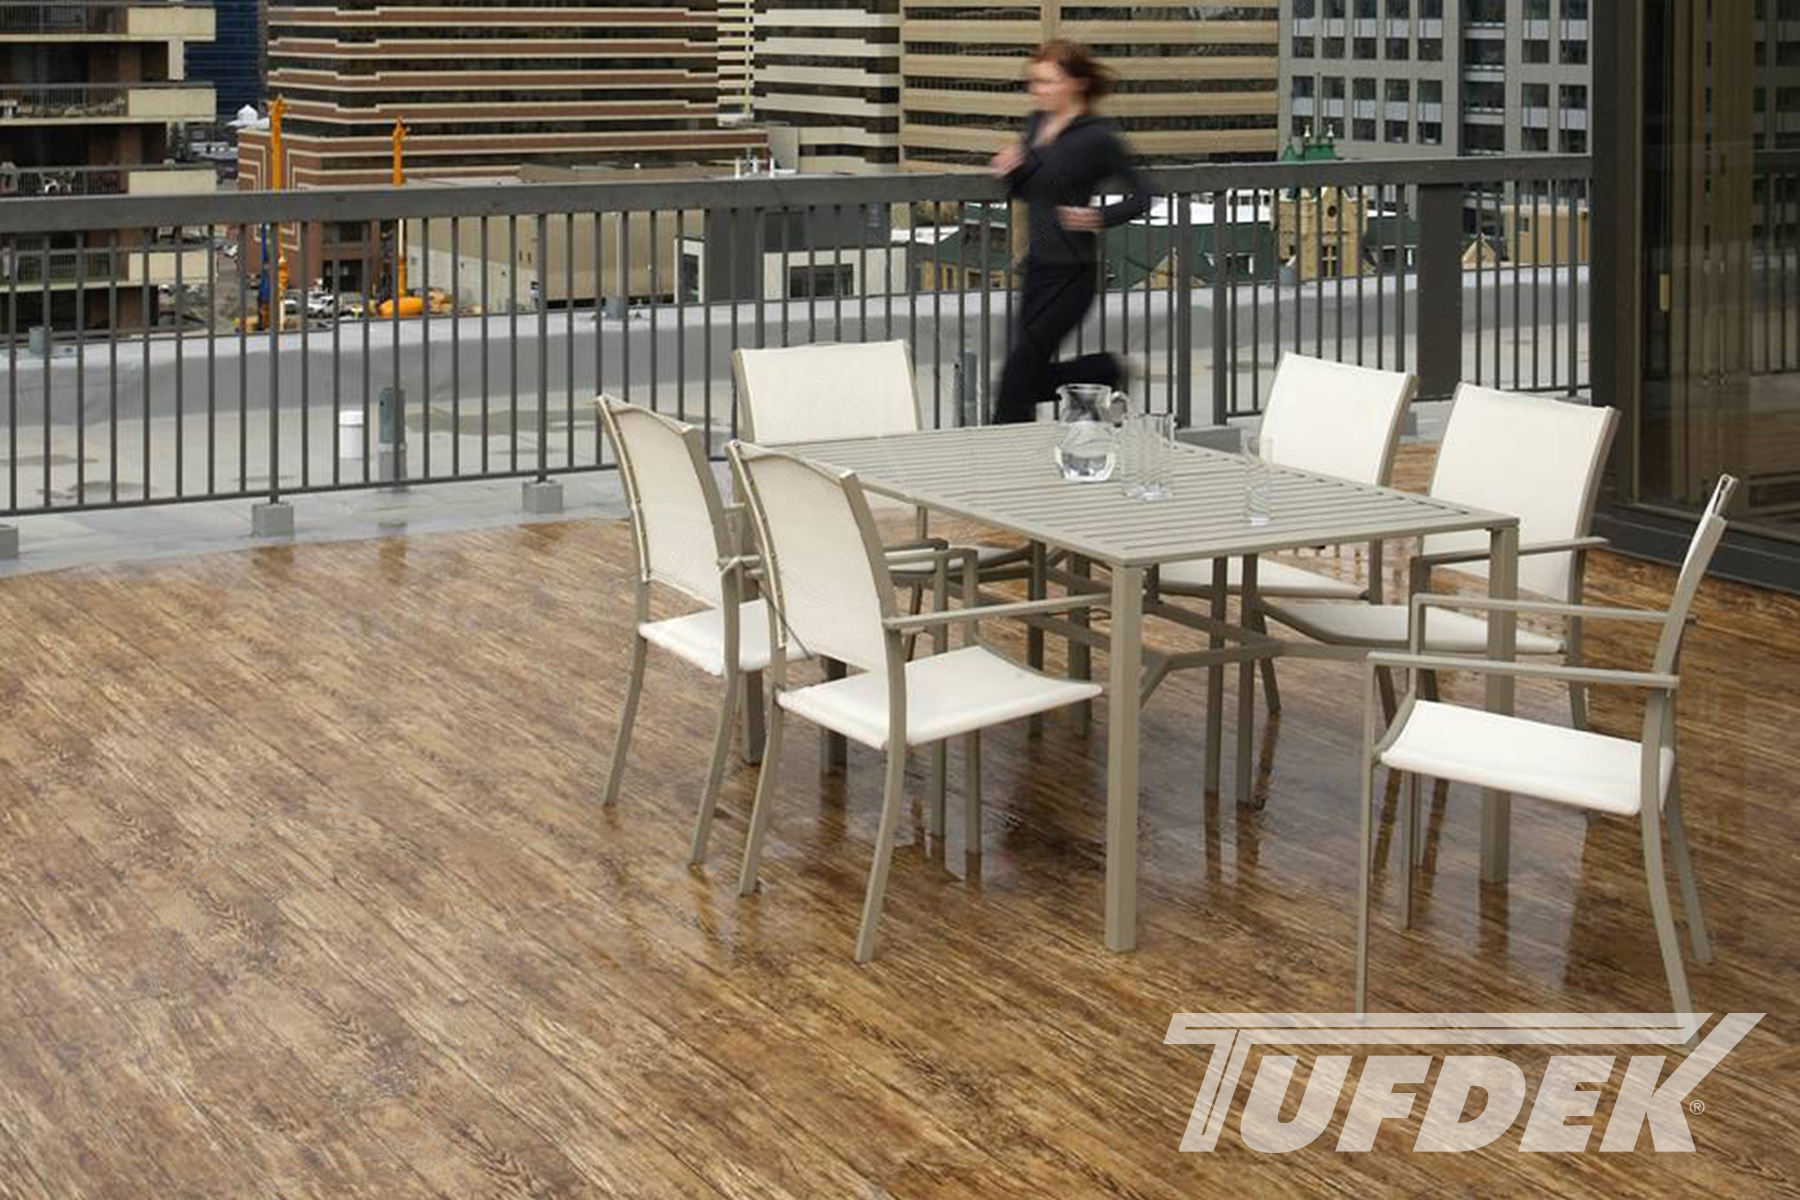 Commercial Waterproof Vinyl Deck Photo Gallery By Tufdek